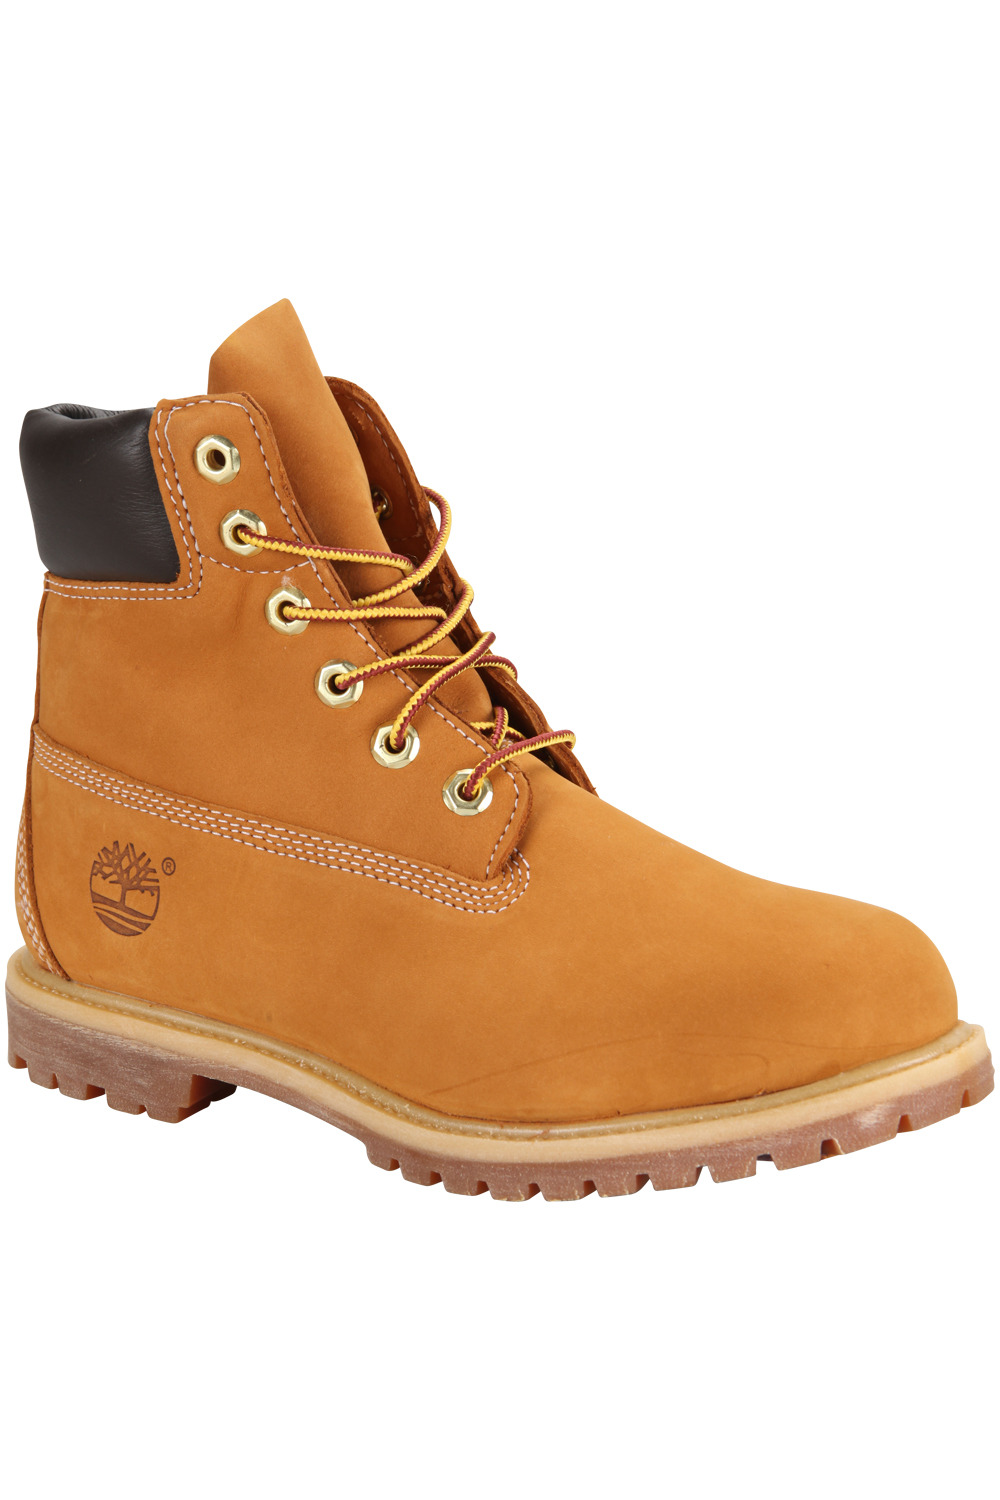 Shoes , Gorgeous Timberland Woman product Image :  Timberland Boat Shoes Product Image